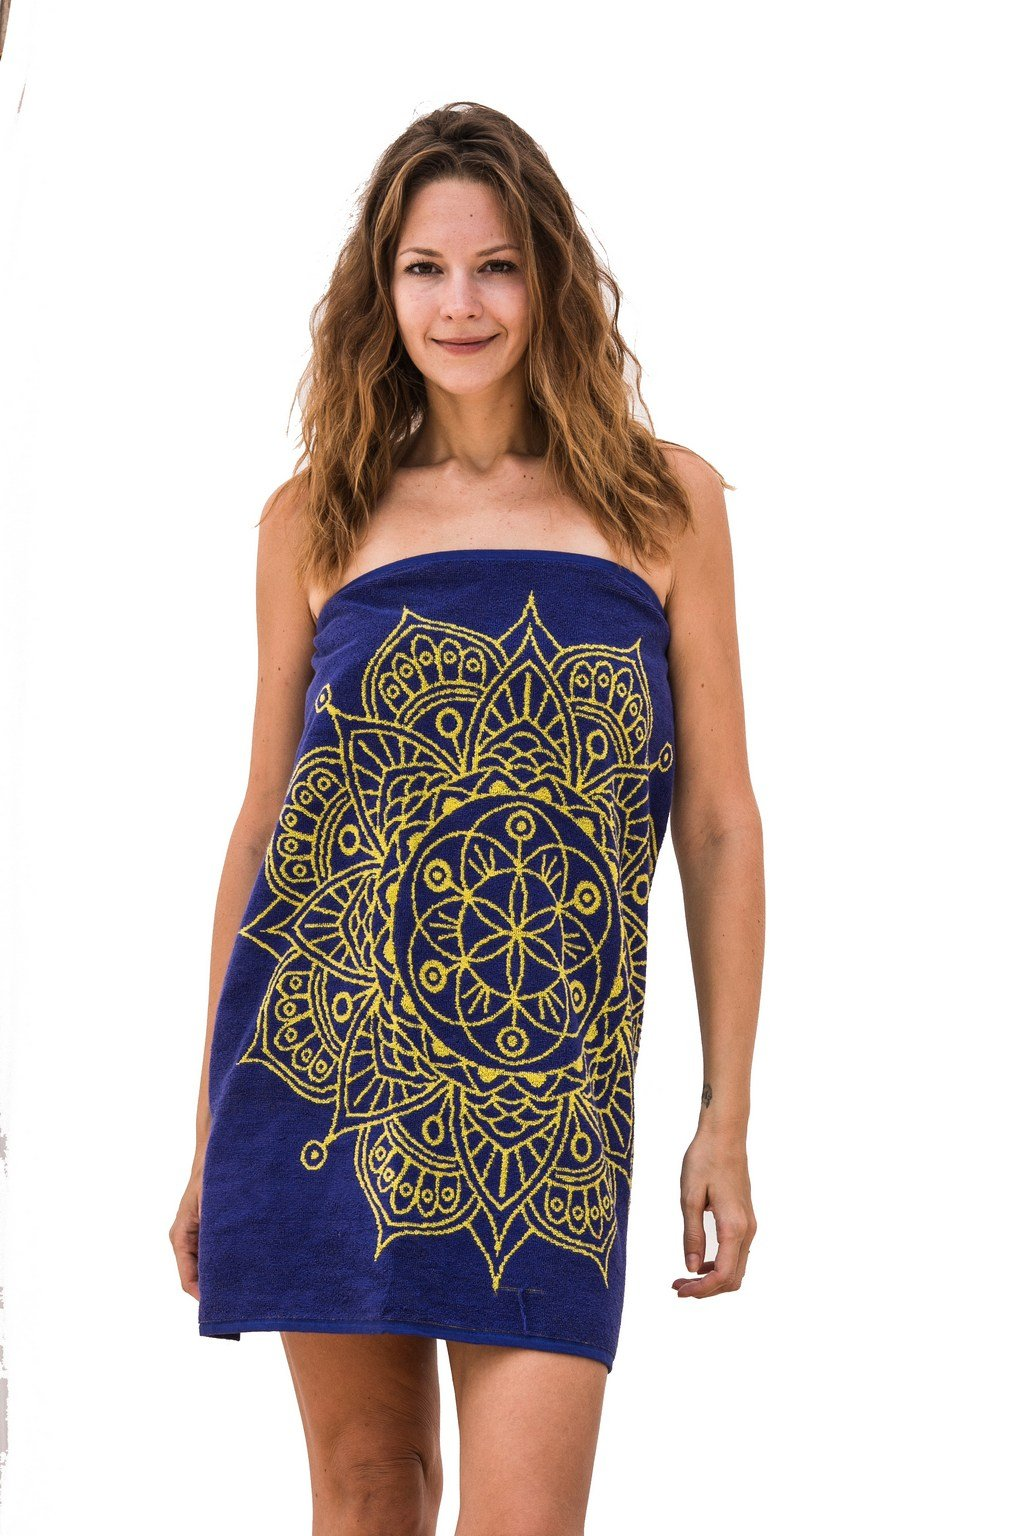 Mandala Life ART Best Bath Towel, Indigo Purple Mandala (Jacquard woven, 52''x27'', Made in Turkey, 100% Cotton) - by